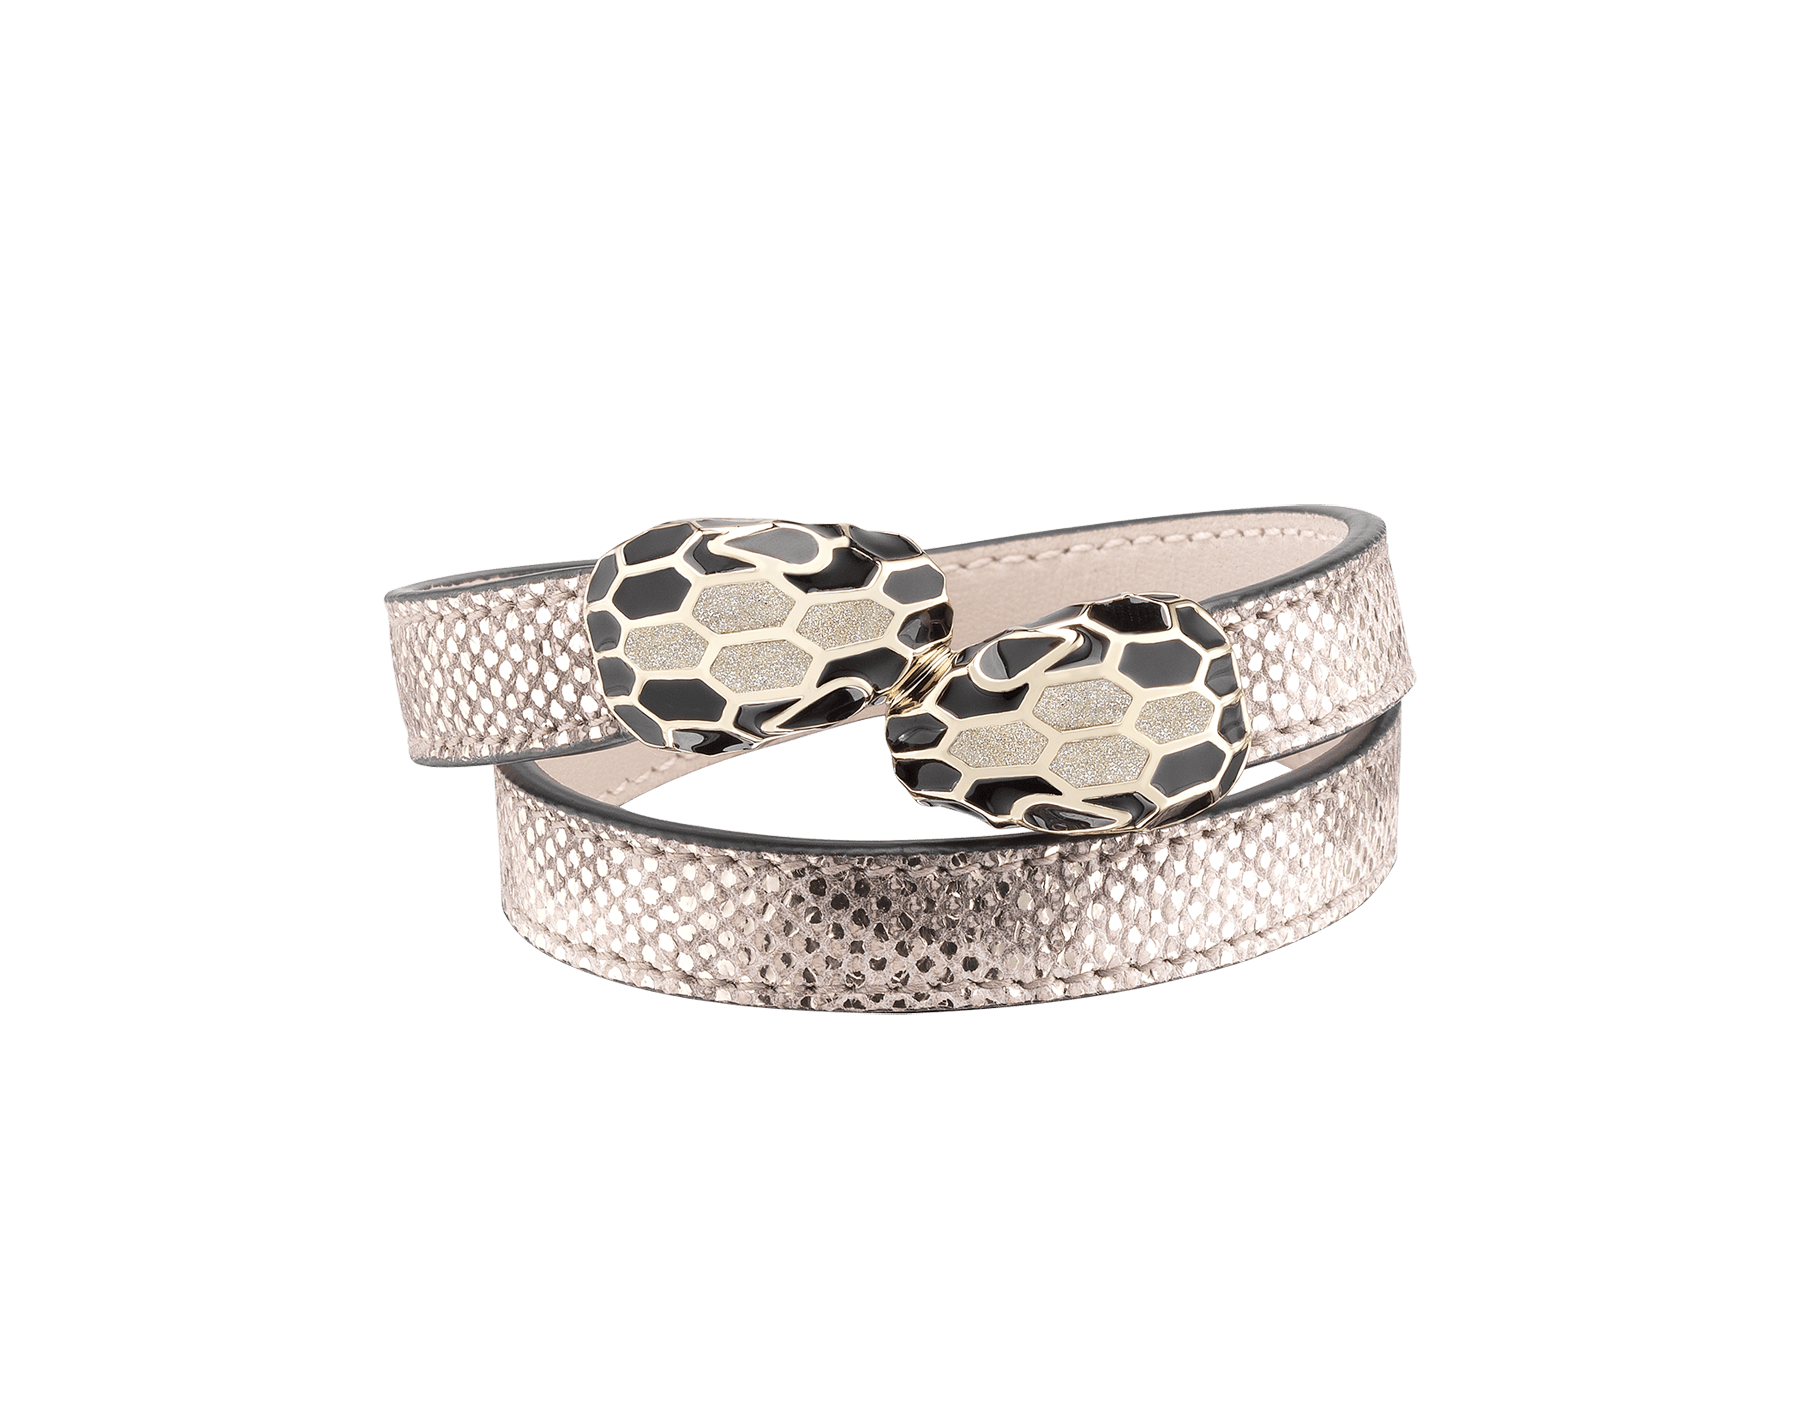 Serpenti Forever multi-coiled bracelet in milky opal metallic karung skin, with light gold-plated brass hardware. Iconic contraire snakehead décor in black and glitter milky opal enamel, with black enamel eyes. MCSerp-MK-MO image 1